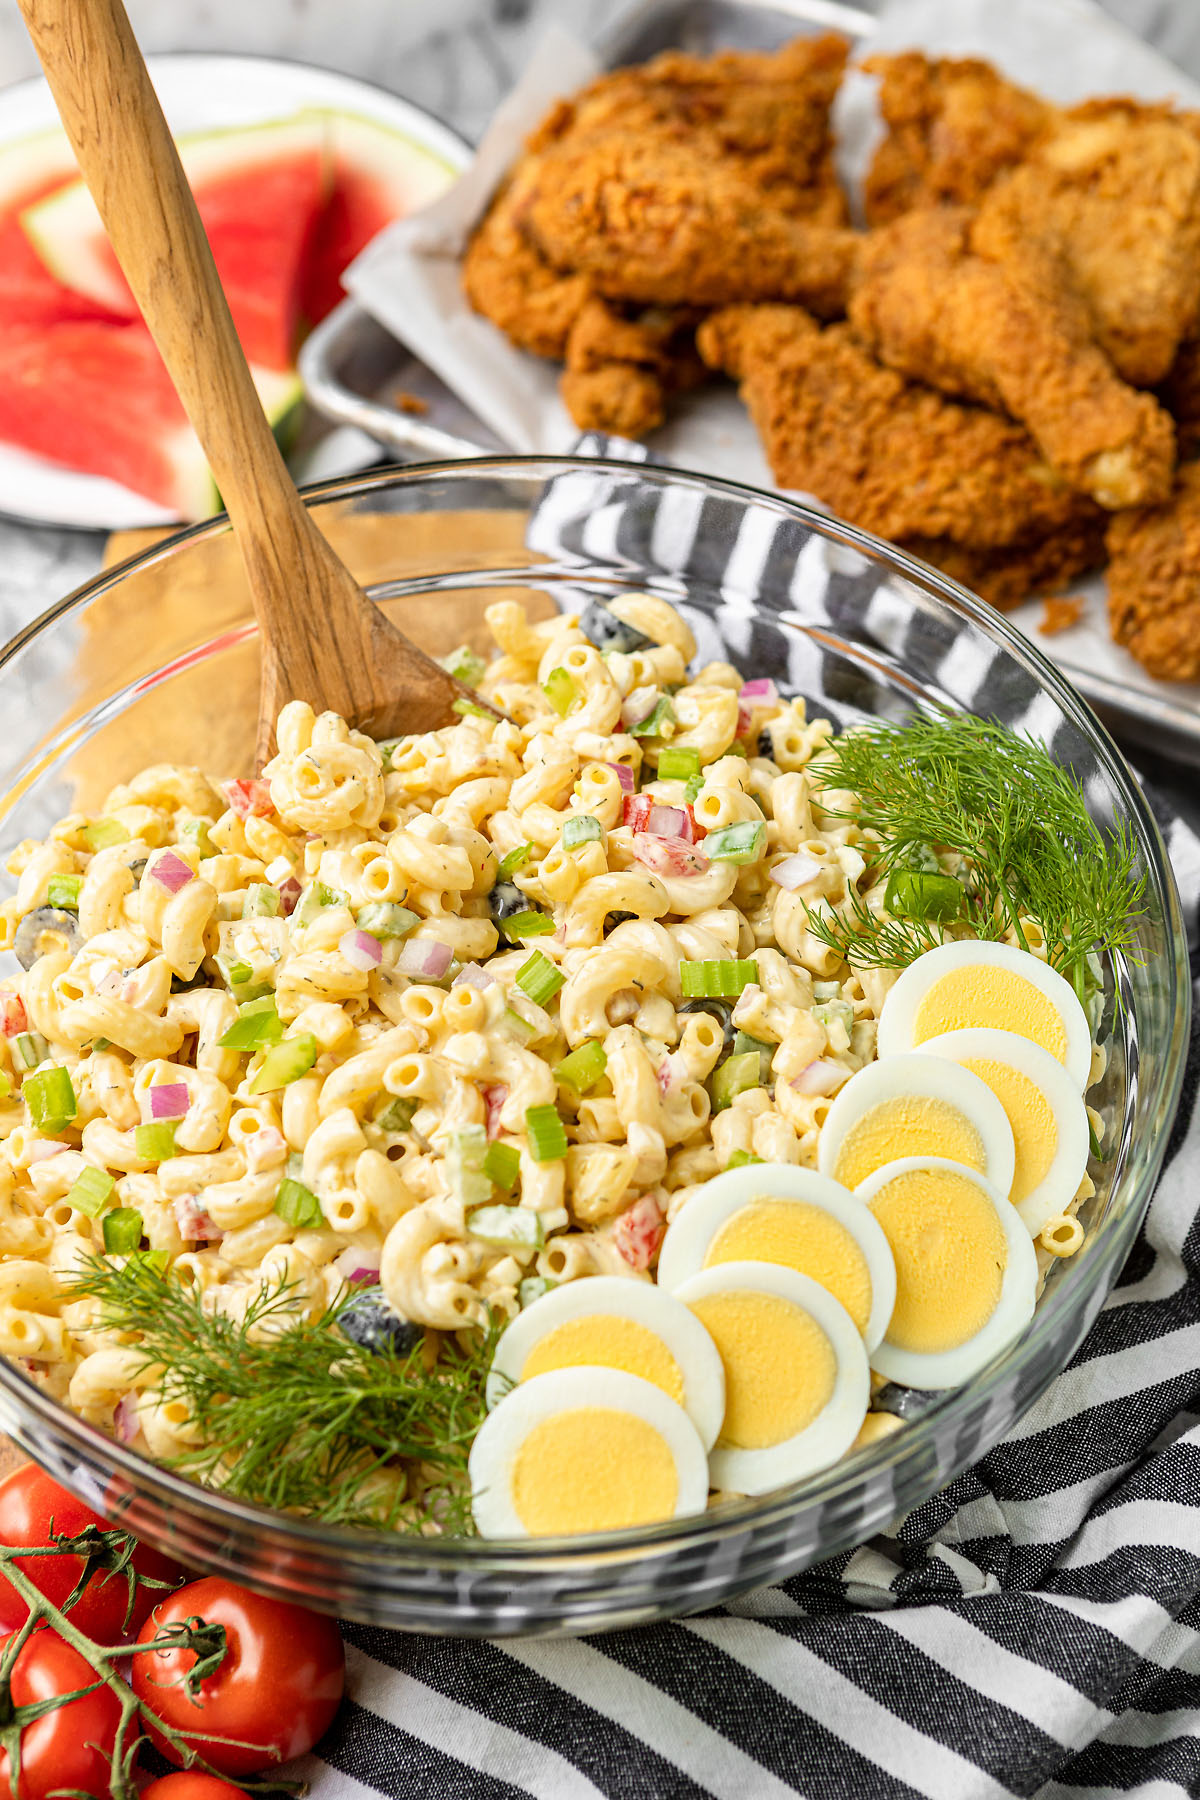 classic macaroni salad with egg in a glass bowl with watermelon slices and fried chicken in the background